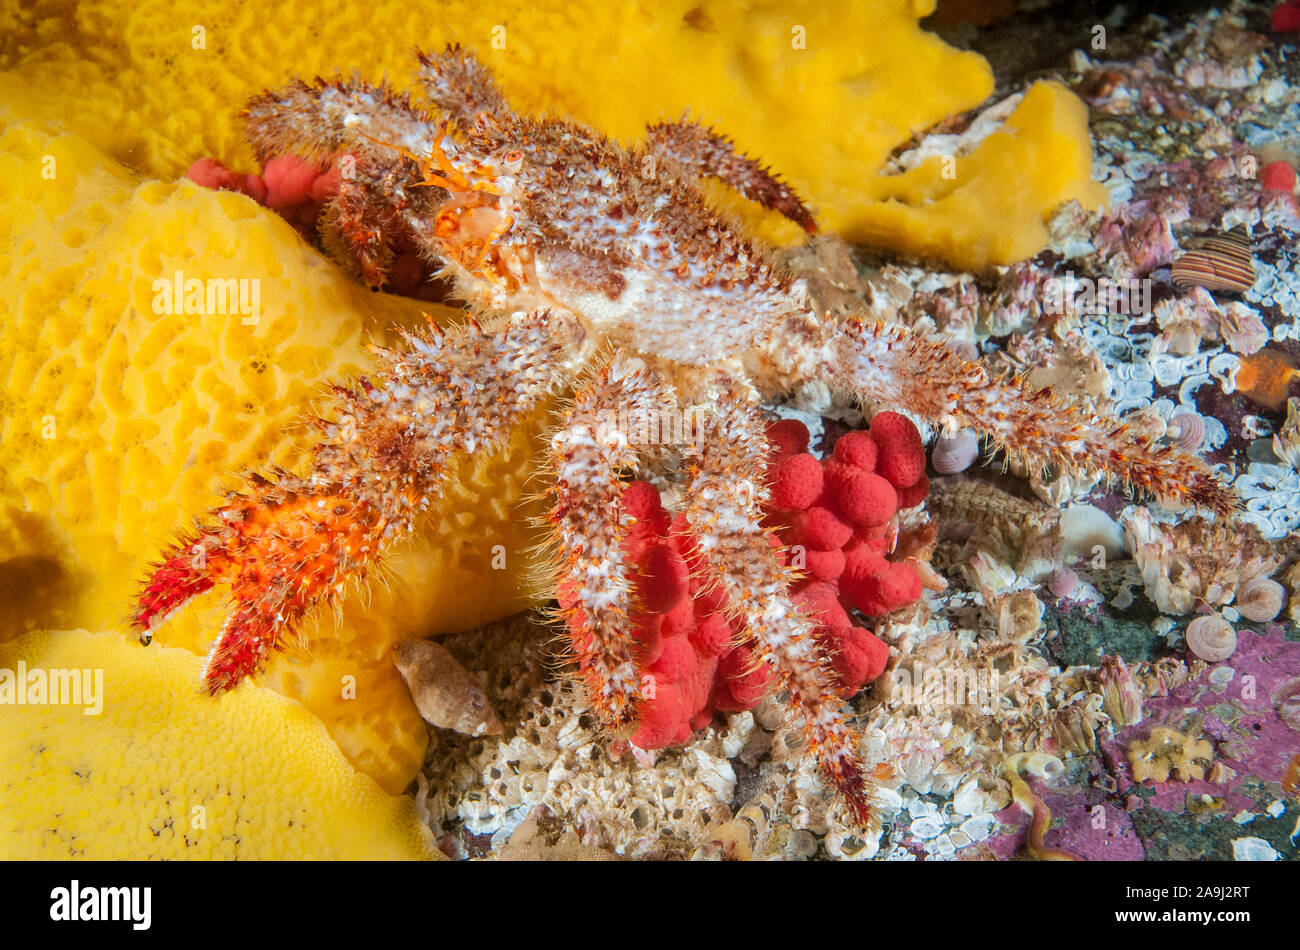 hairy spined crab, Acantholithodes hispidus, walking over sulfur sponge, Myxilla lacunosa, red soft coral, Alcyonum species, and acorn barnacles, Brow Stock Photo